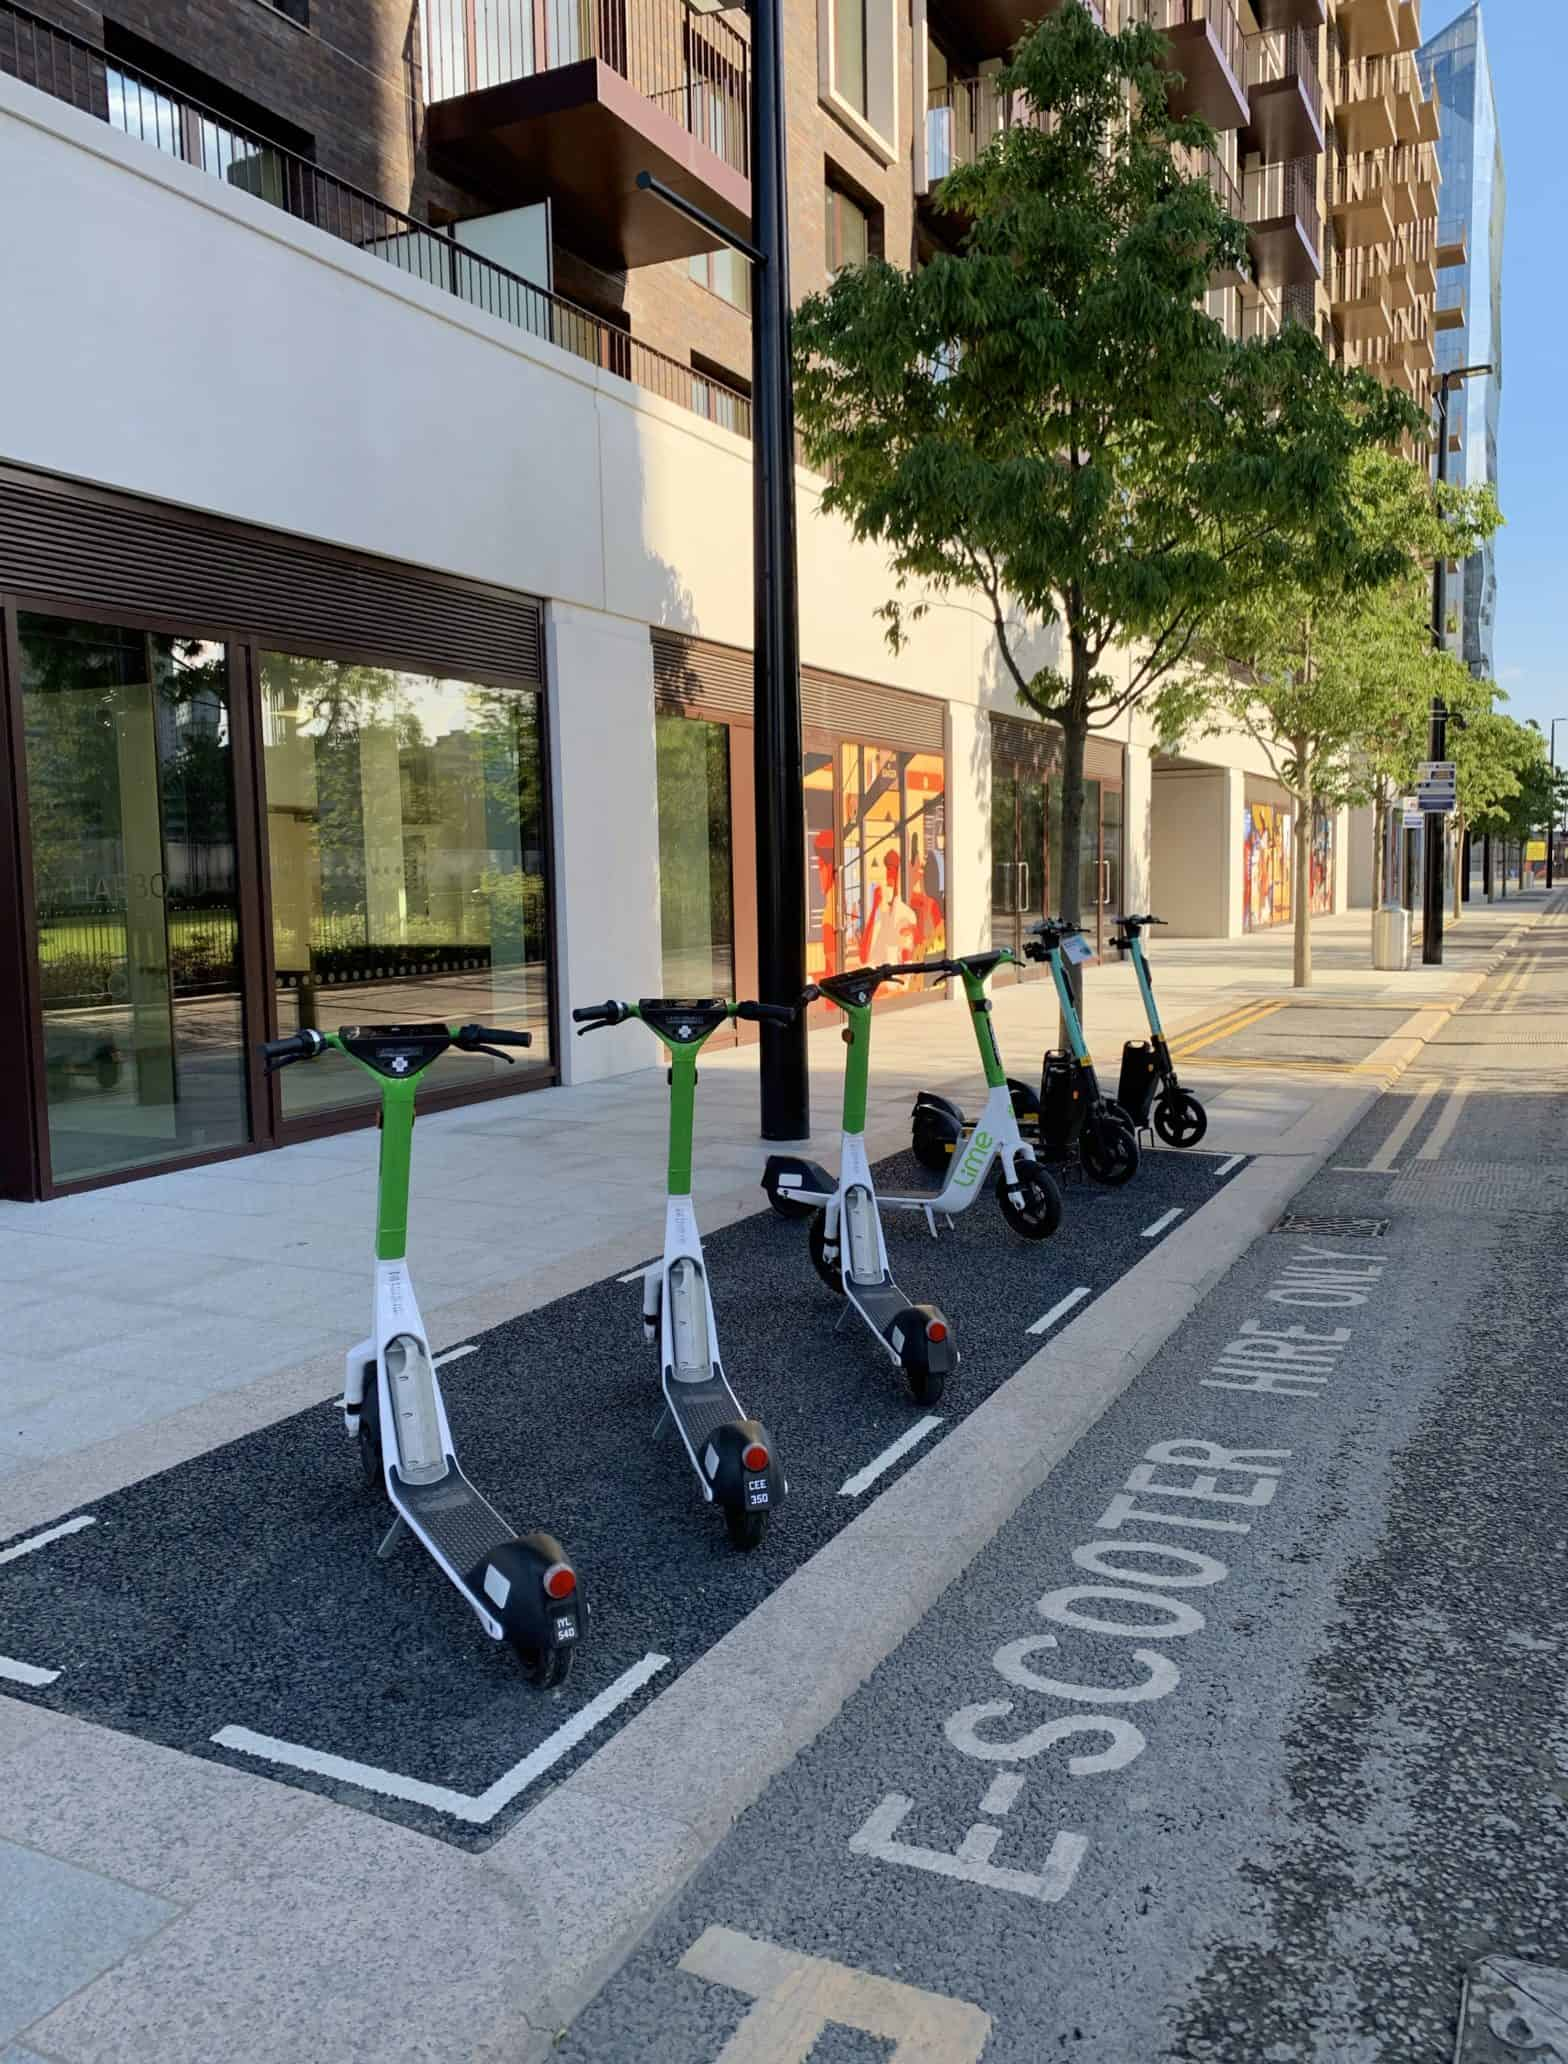 canary wharf e-scooter hire bay located in wood wharf residential district